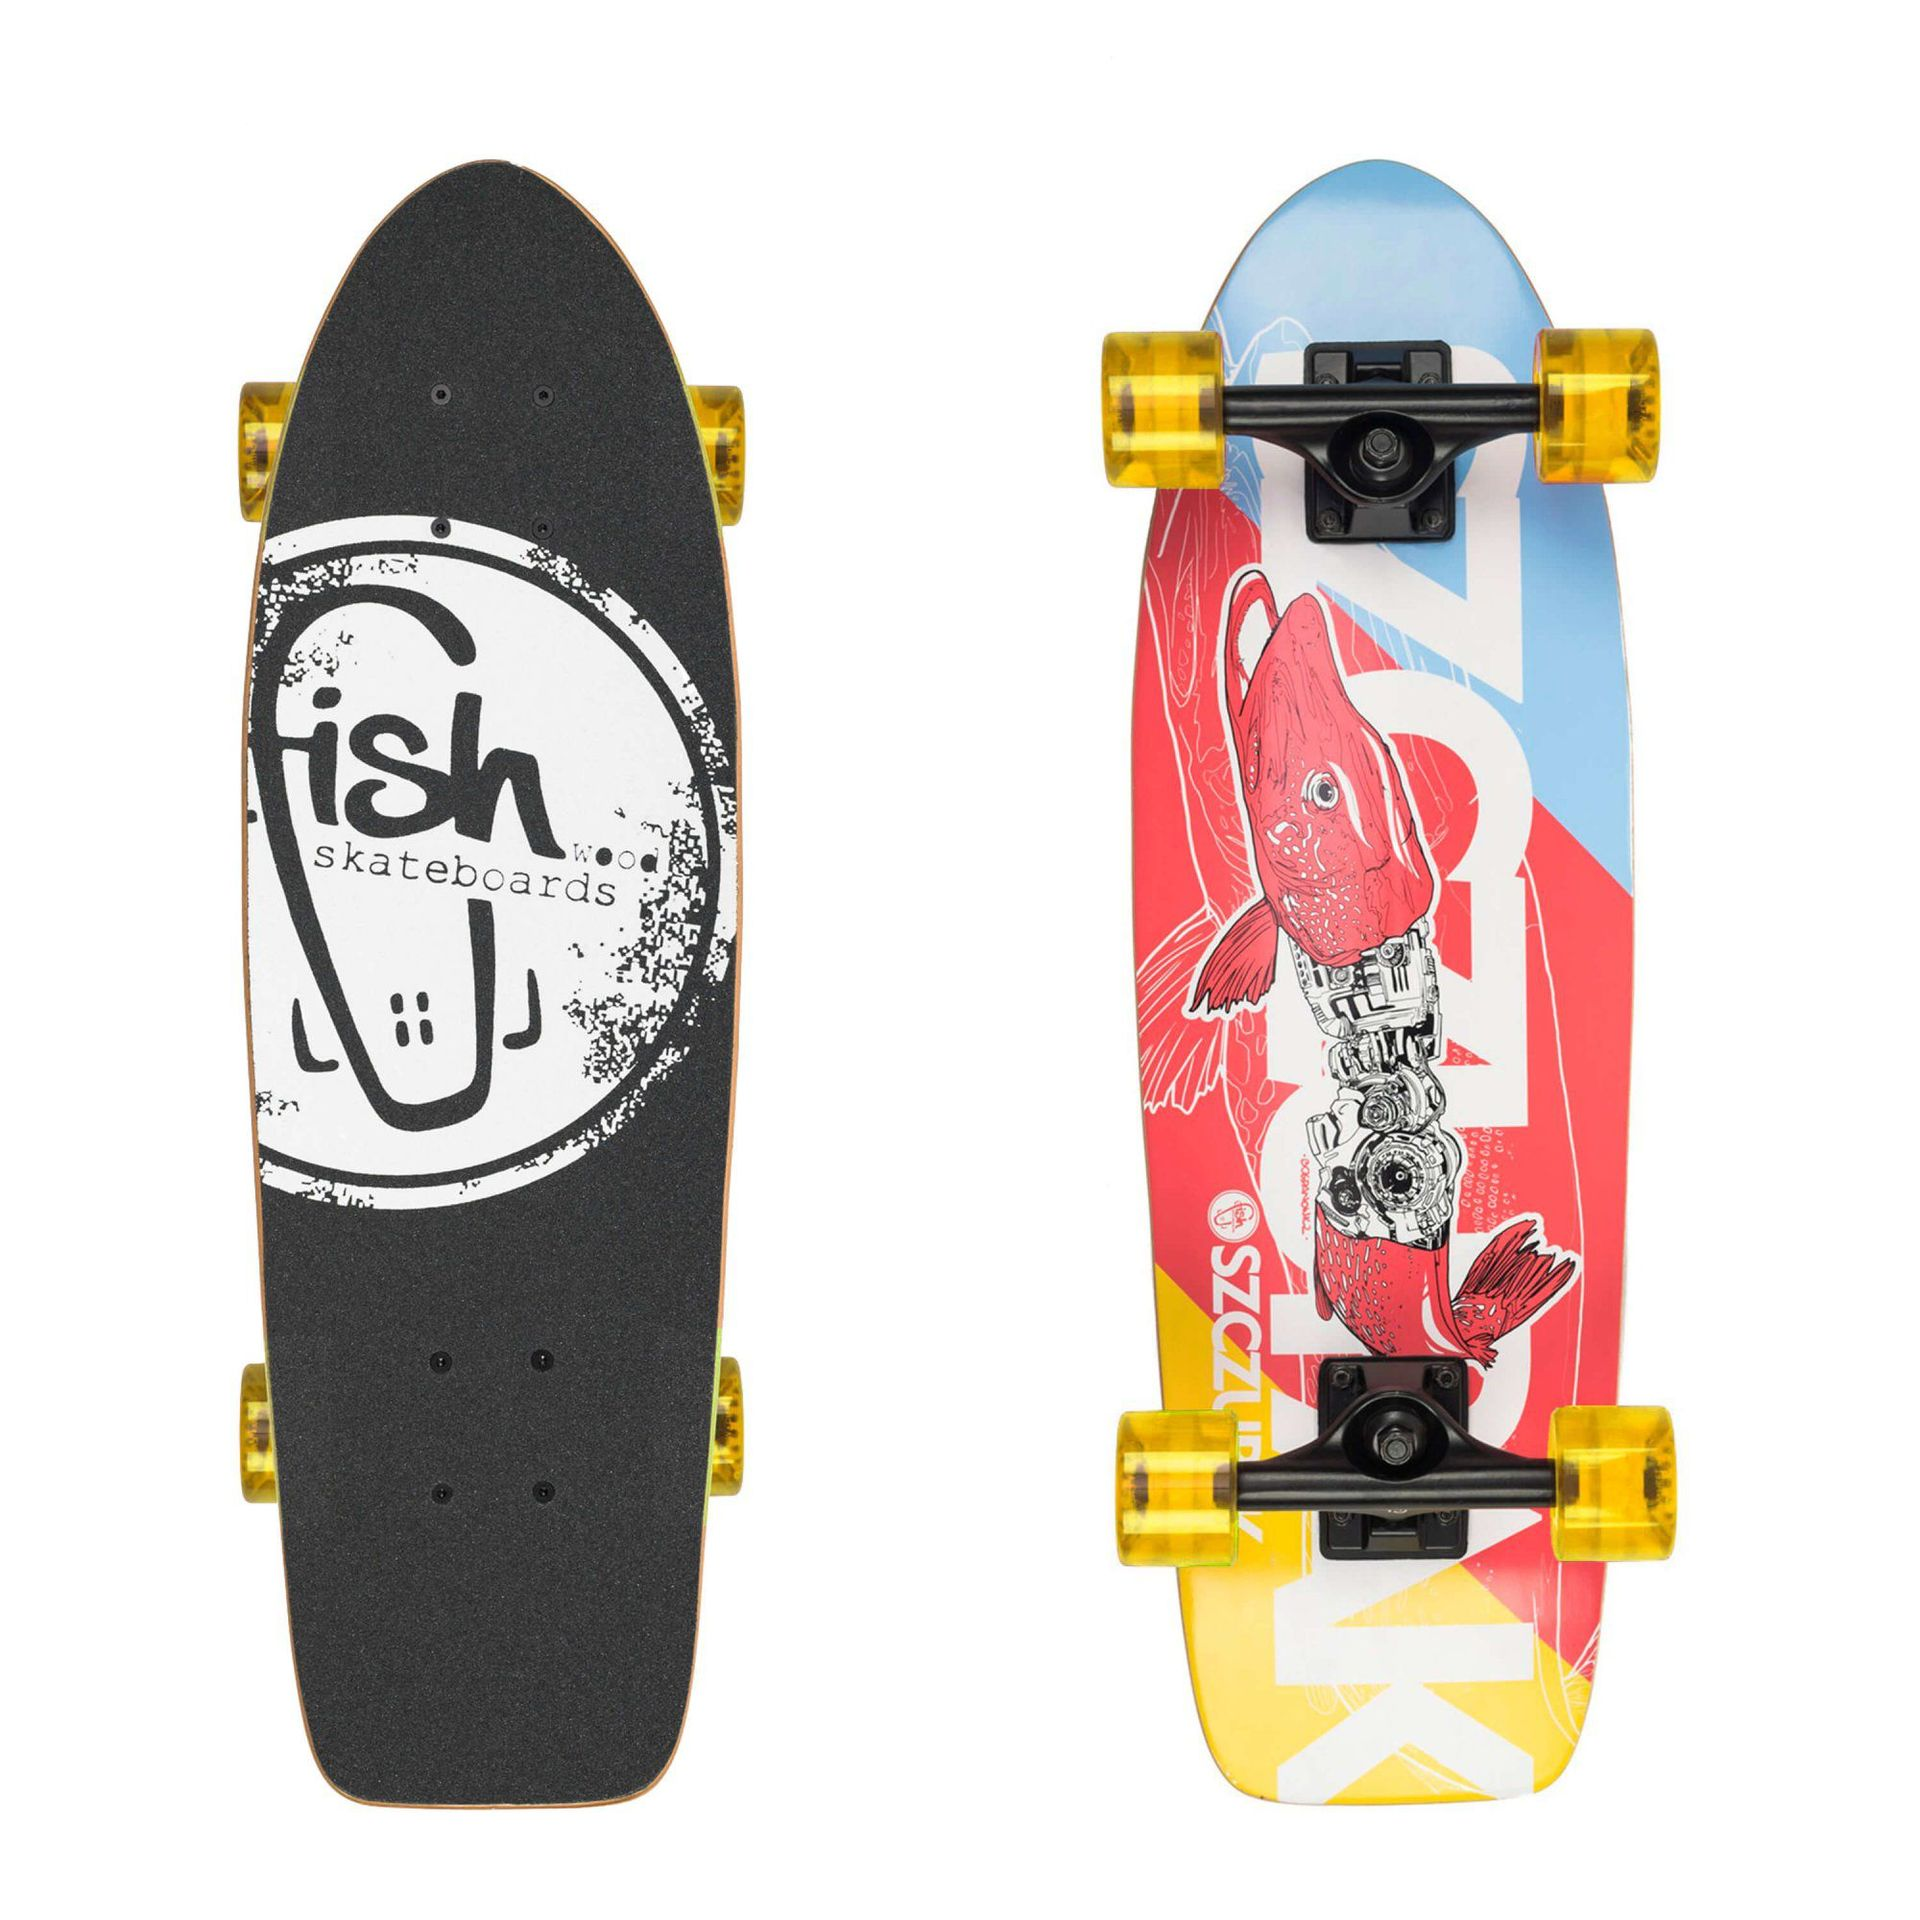 FISHBOARD FISH SKATEBOARDS CRUISER 26 SZCZUPAK|BLACK|TRANSPARENT YELLOW 1